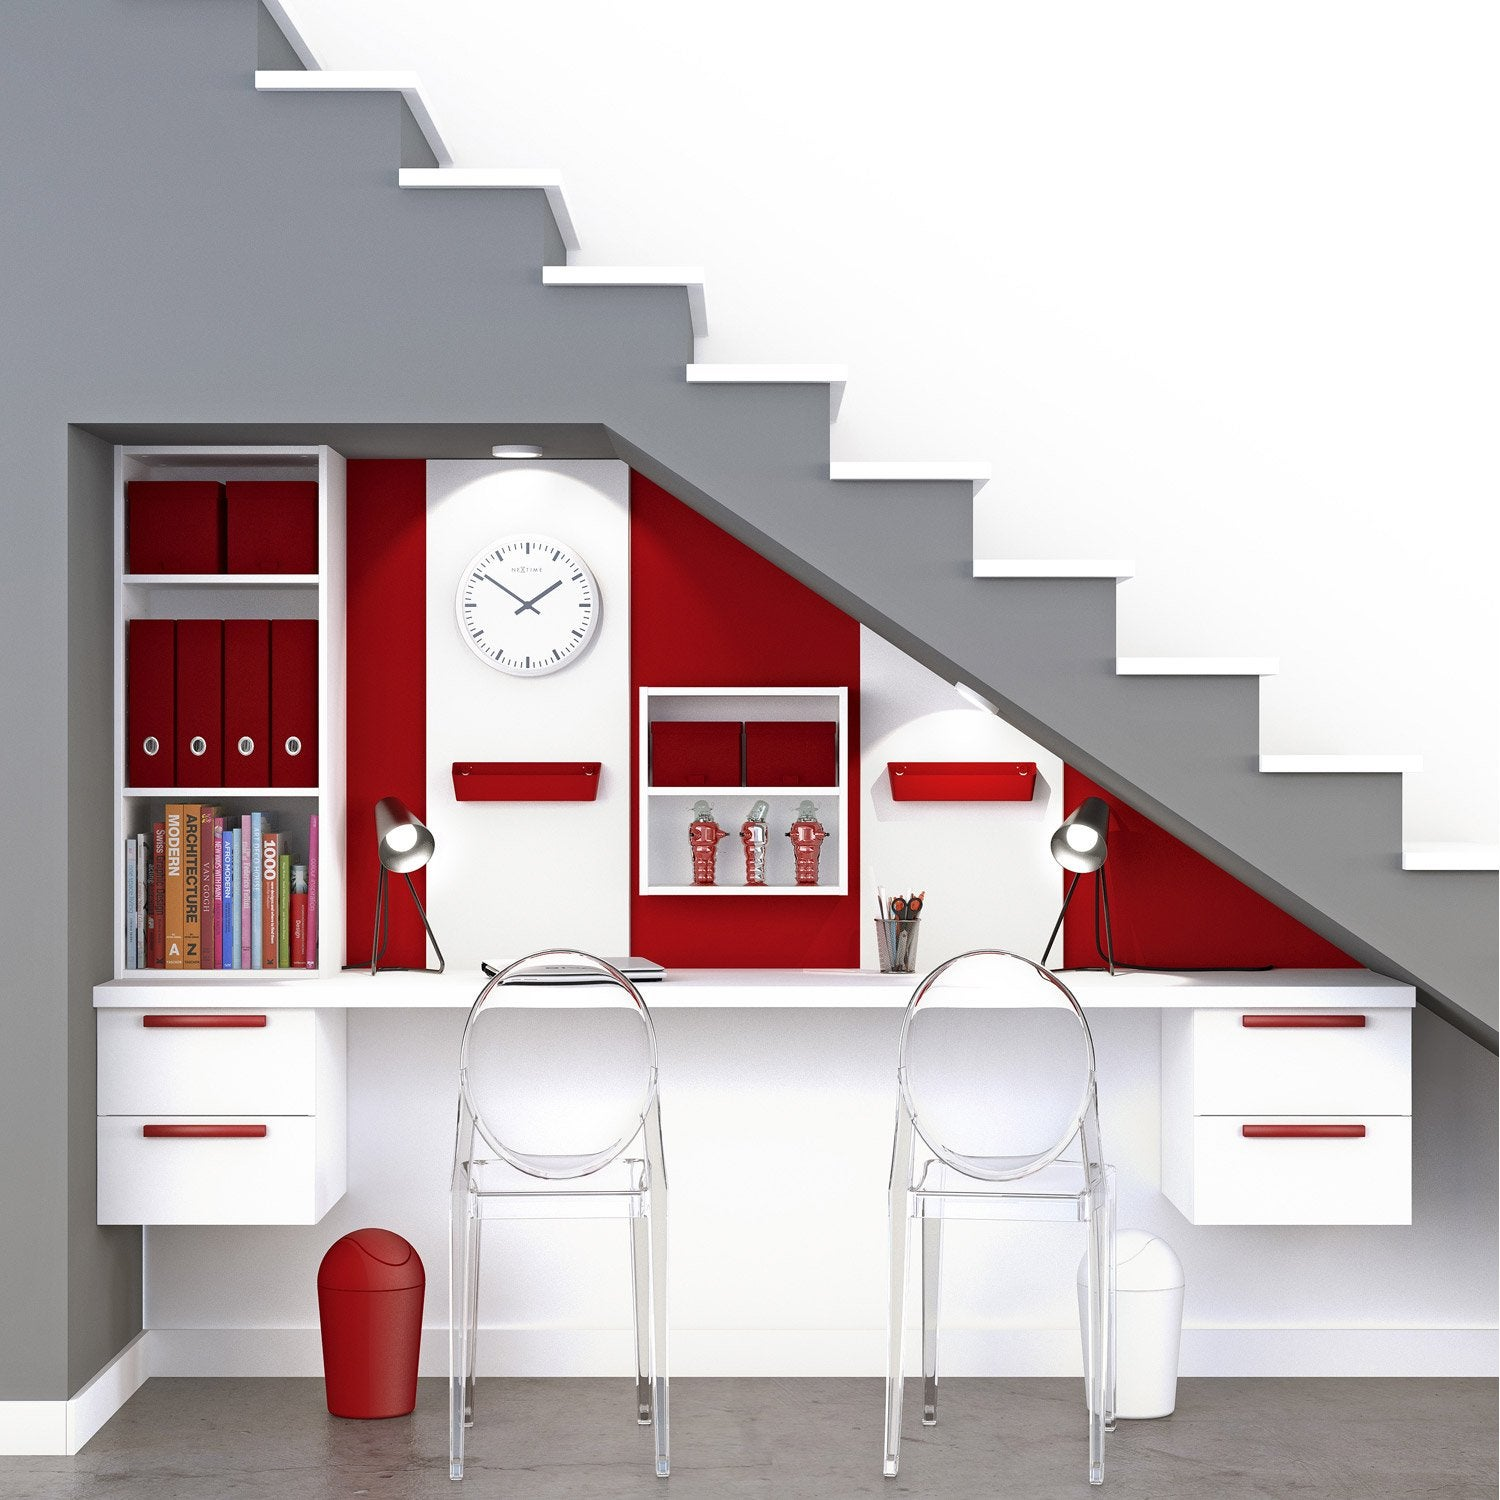 Bureau spaceo home blanc leroy merlin for Amenagement salon avec escalier